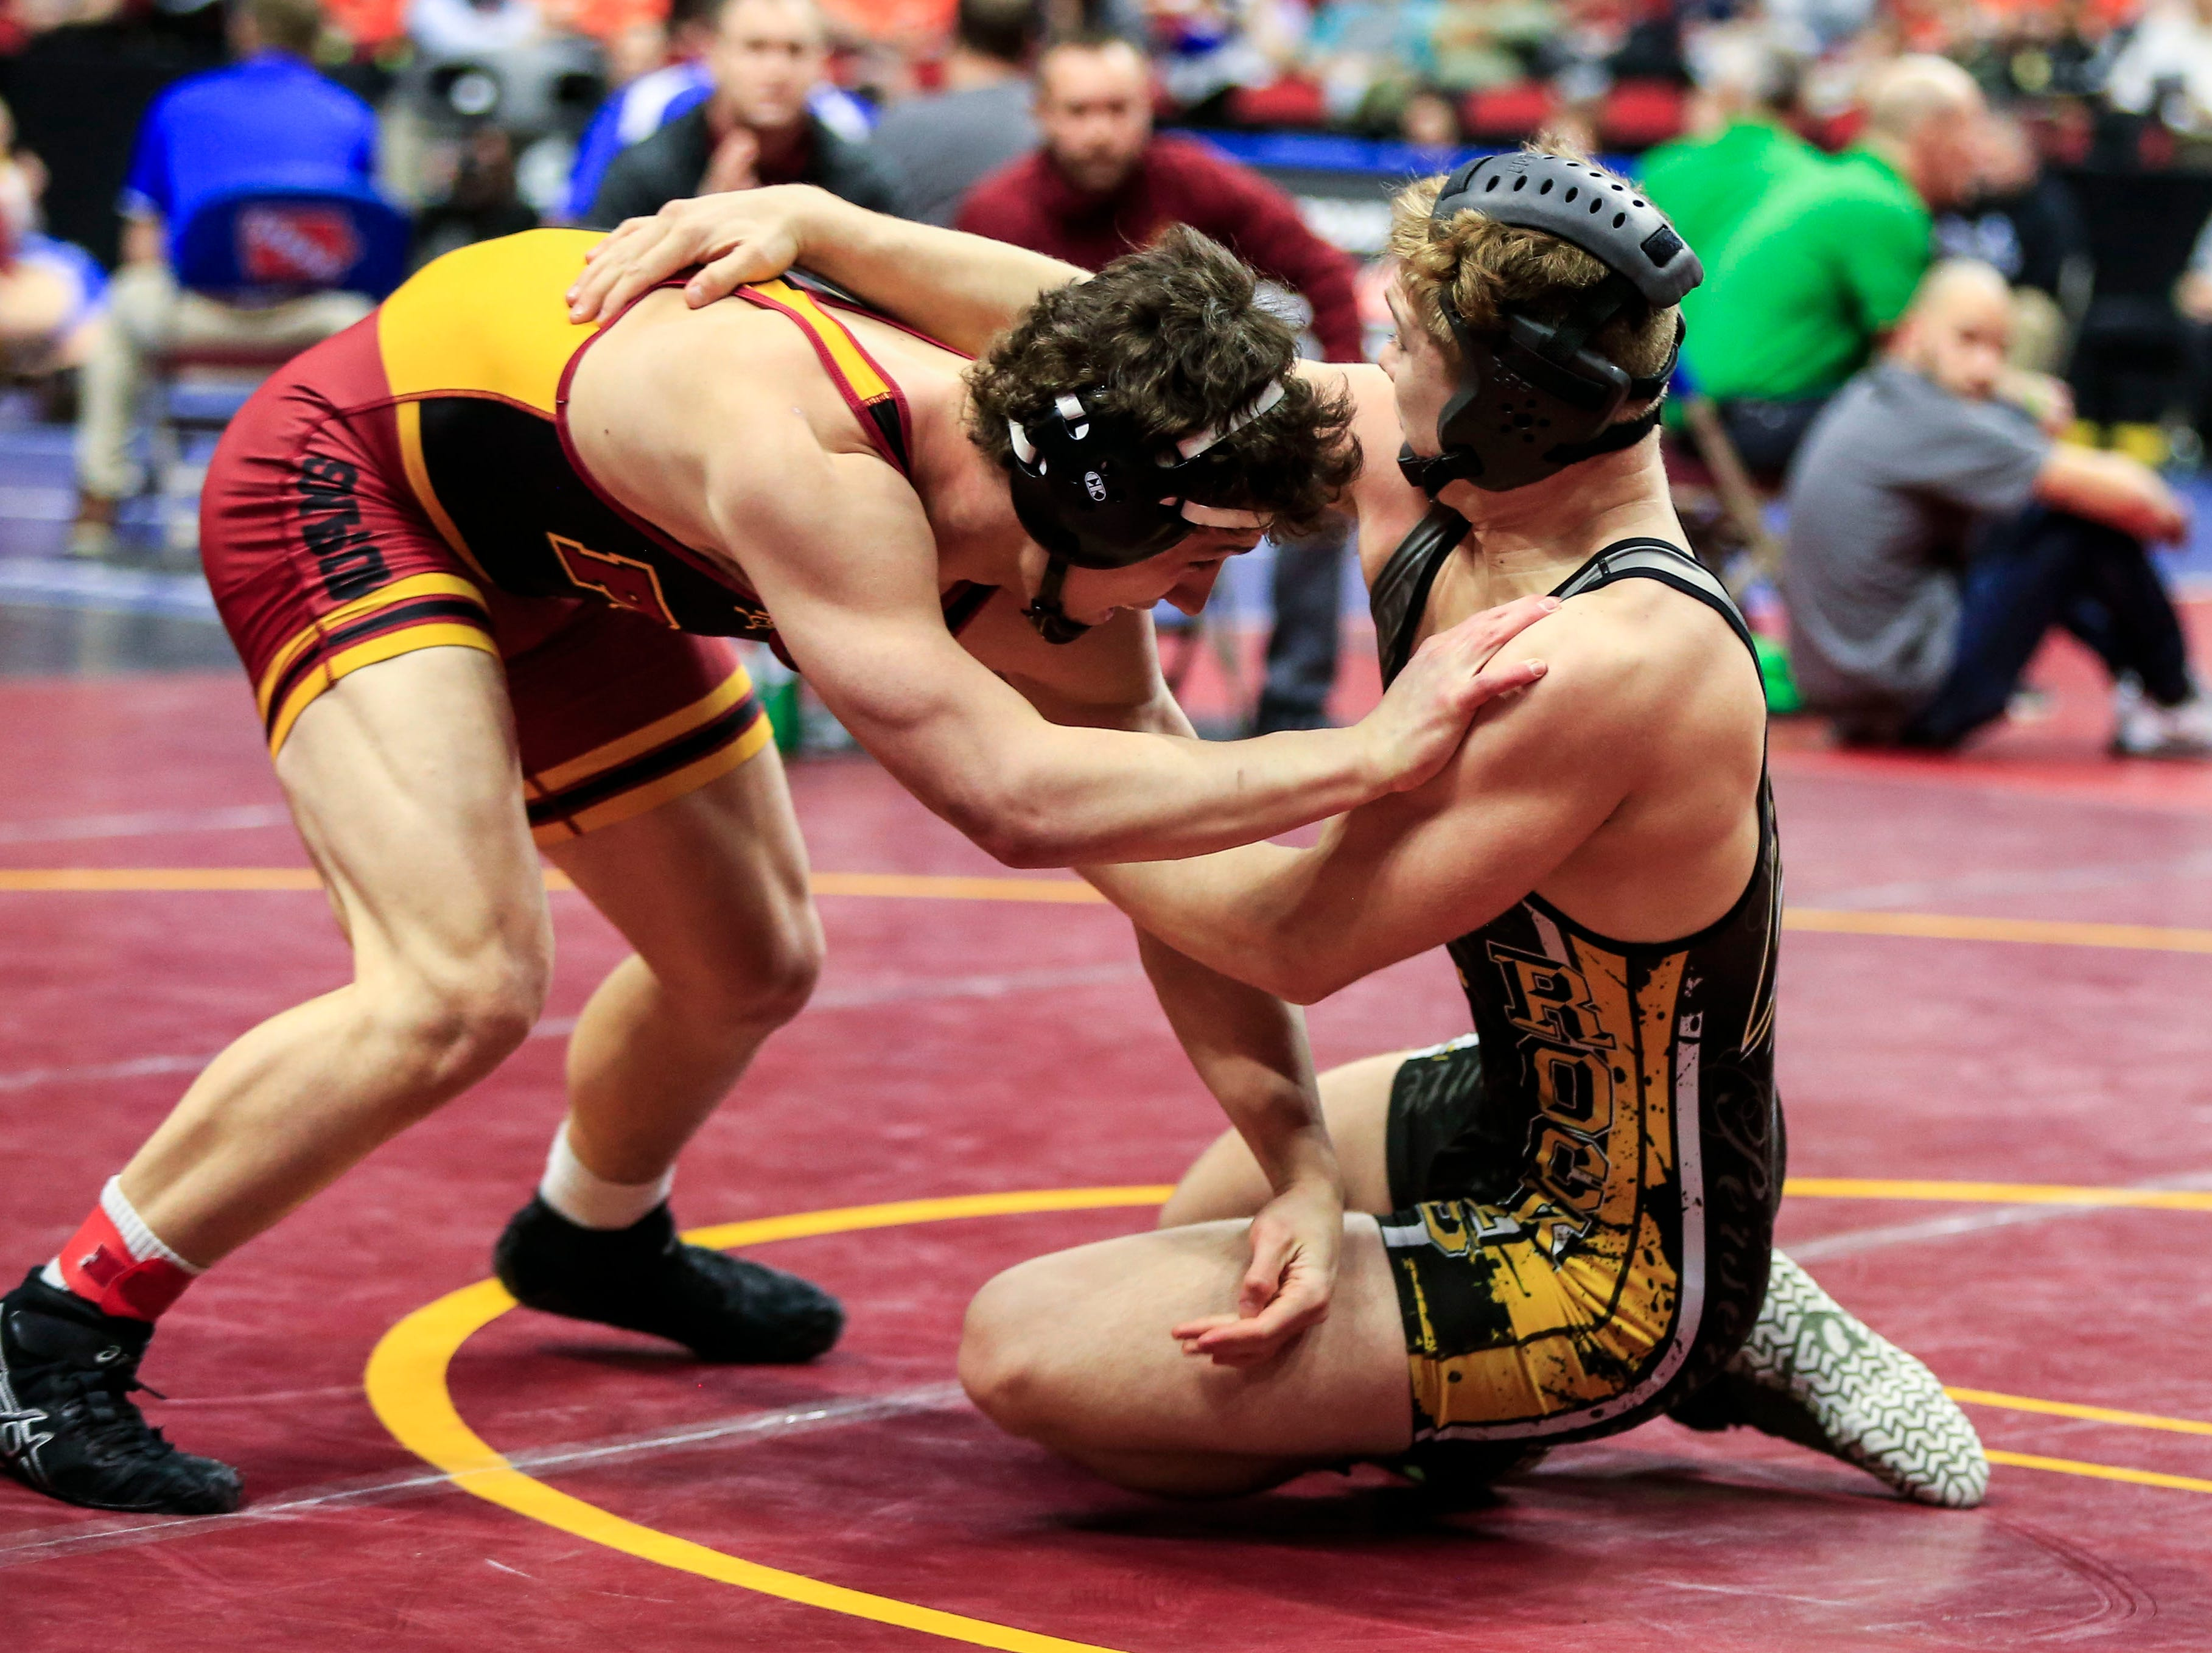 Sage Walker of Eddyville-Blakesburg-Fremont defeats Jarron Trausch of PCM, Monroe during a 170 Lb 2A quarterfinal match at the state wrestling tournament Friday, Feb. 15, 2019.